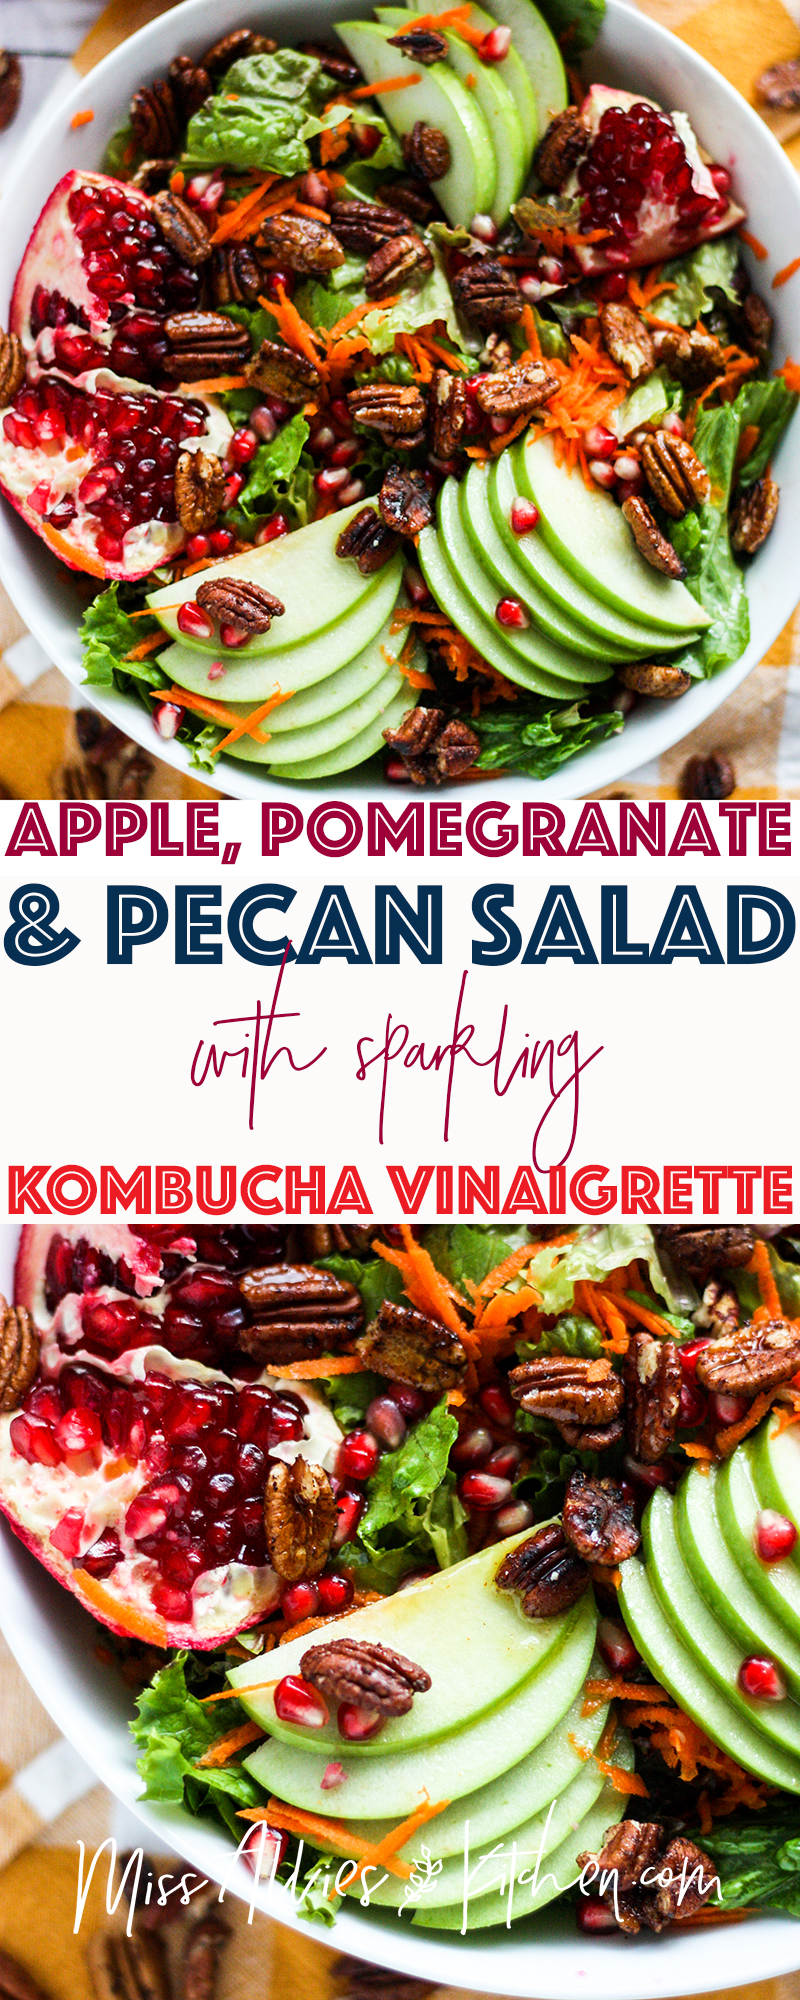 Apple Pomegranate & Pecan Salad with Sparkling Kombucha Vinaigrette